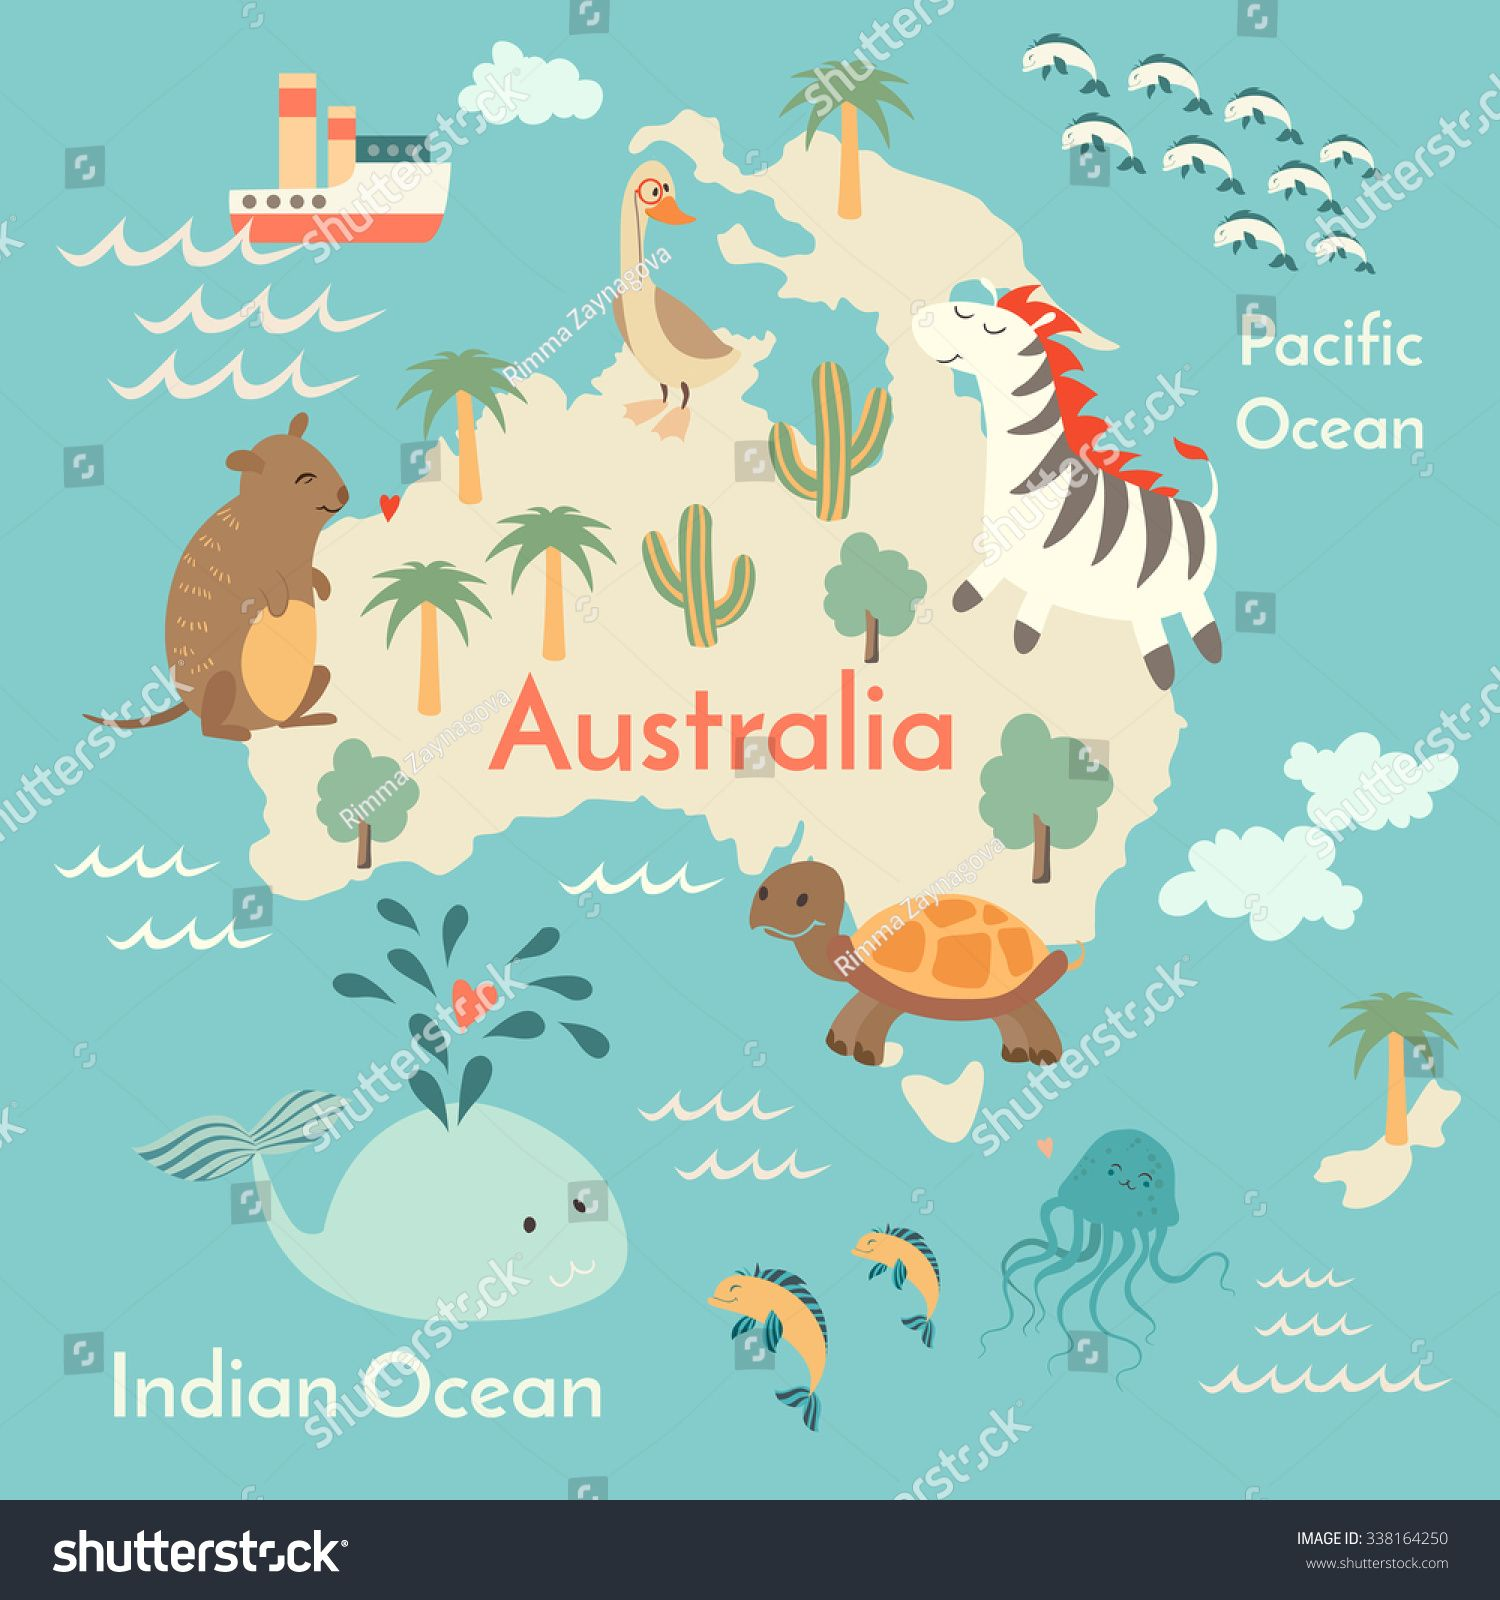 Animals world map australiastralia map for childrenkids animals world map australiastralia map for childrenkids australian animals poster gumiabroncs Images